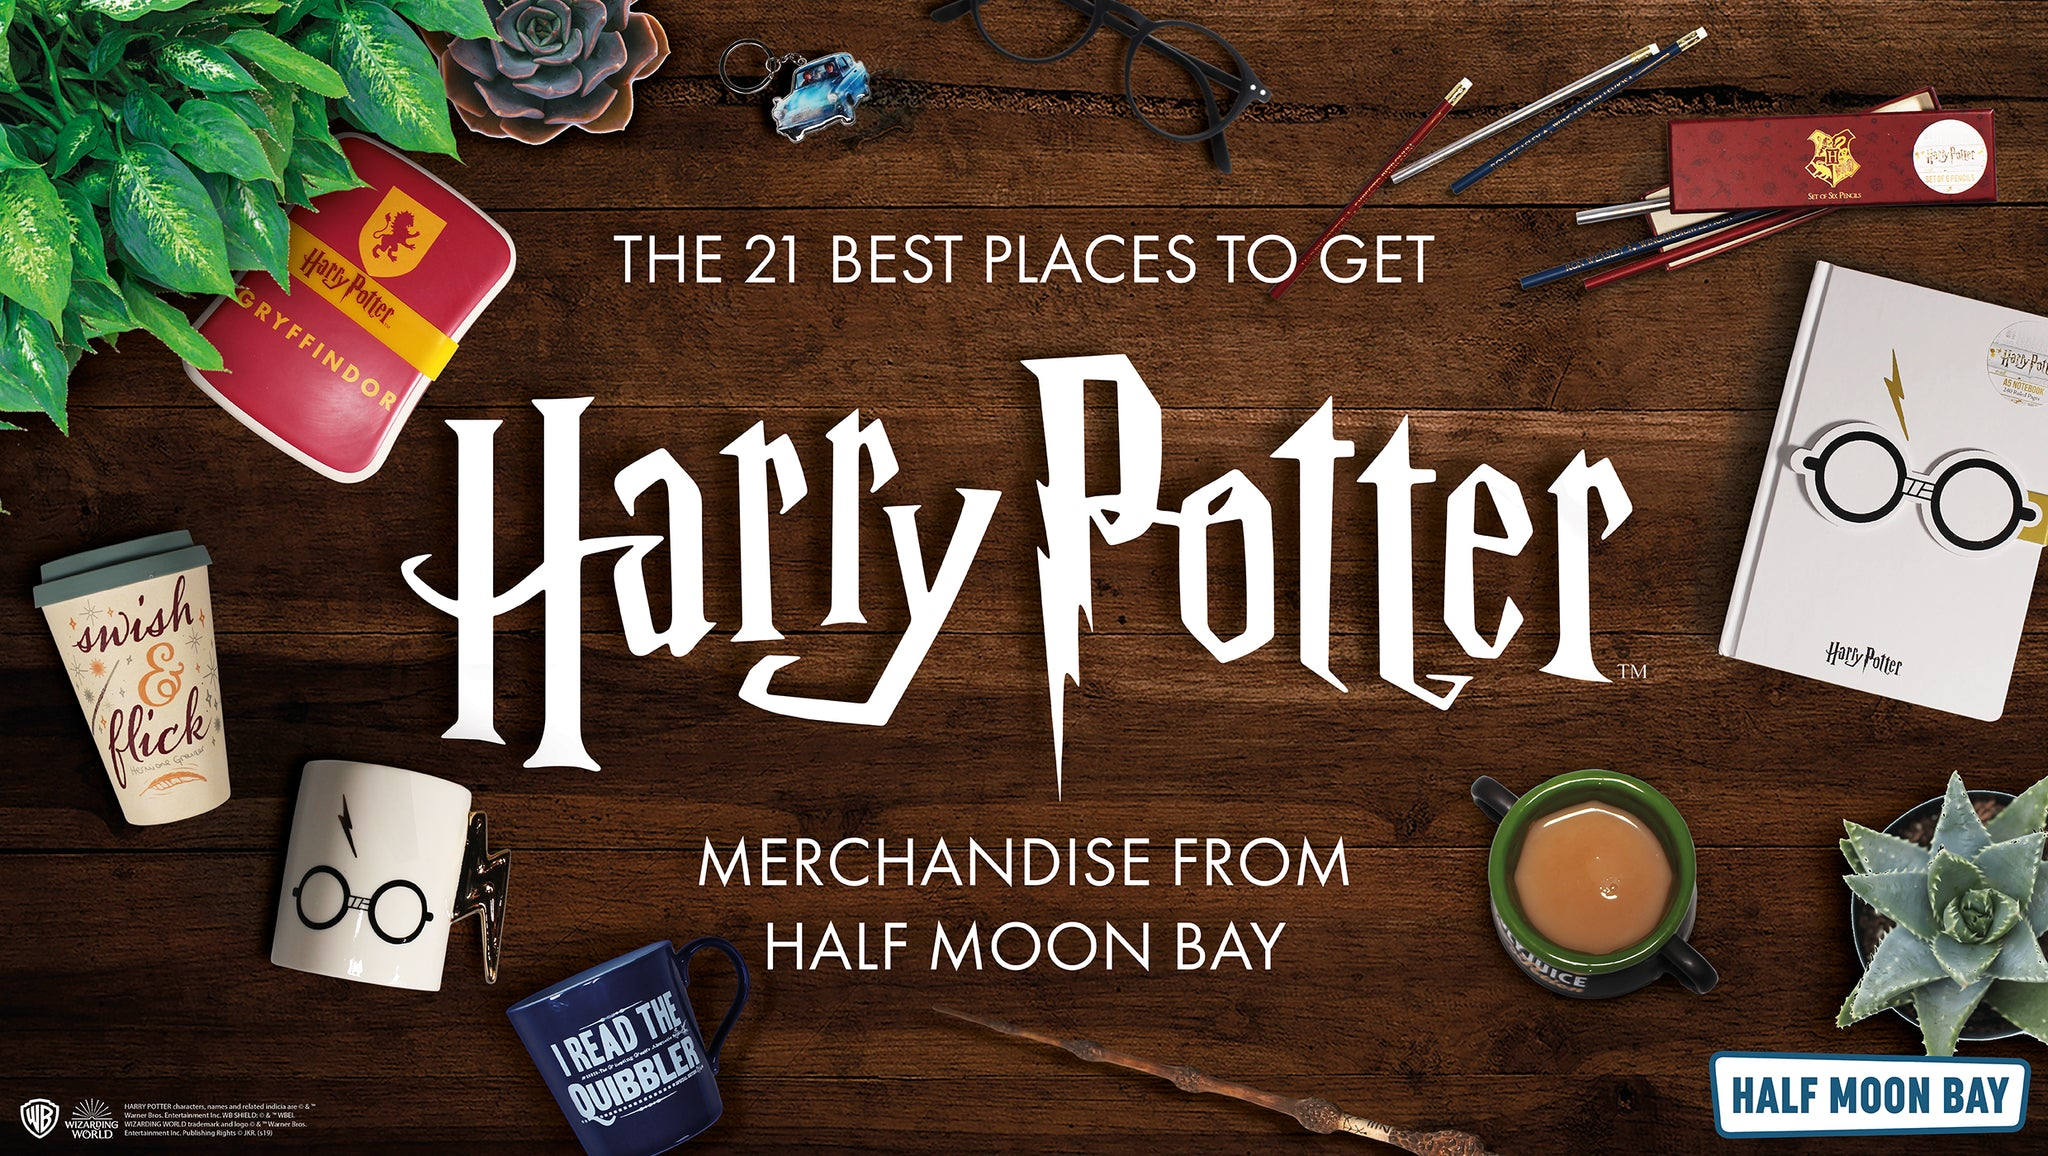 The Amazing Harry Potter Shops You Won't Find on Diagon Alley